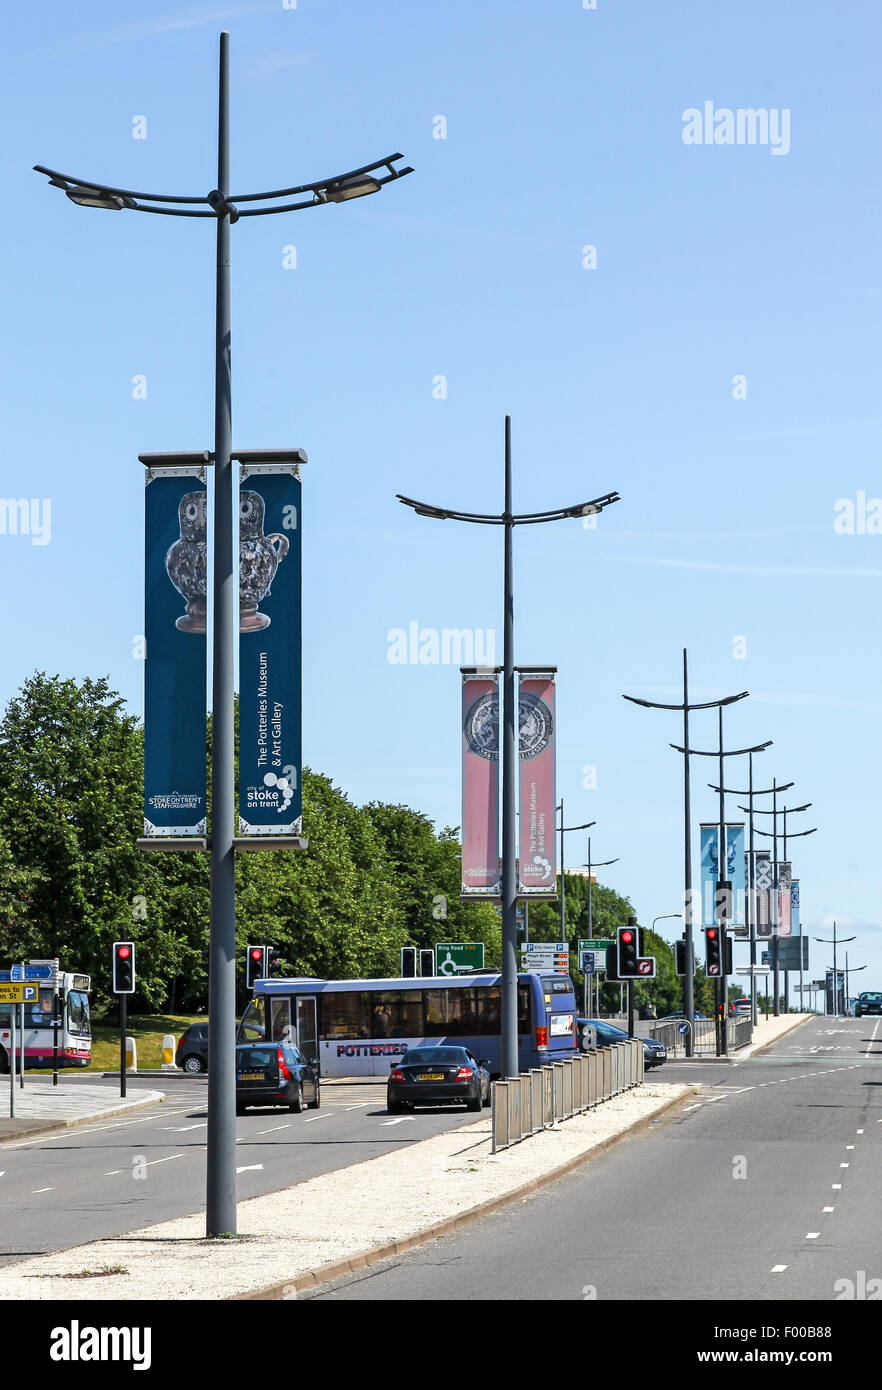 Banners on lamp posts on a road in Stoke on Trent displaying local pottery firms and the Hanley Museum - Stock Image